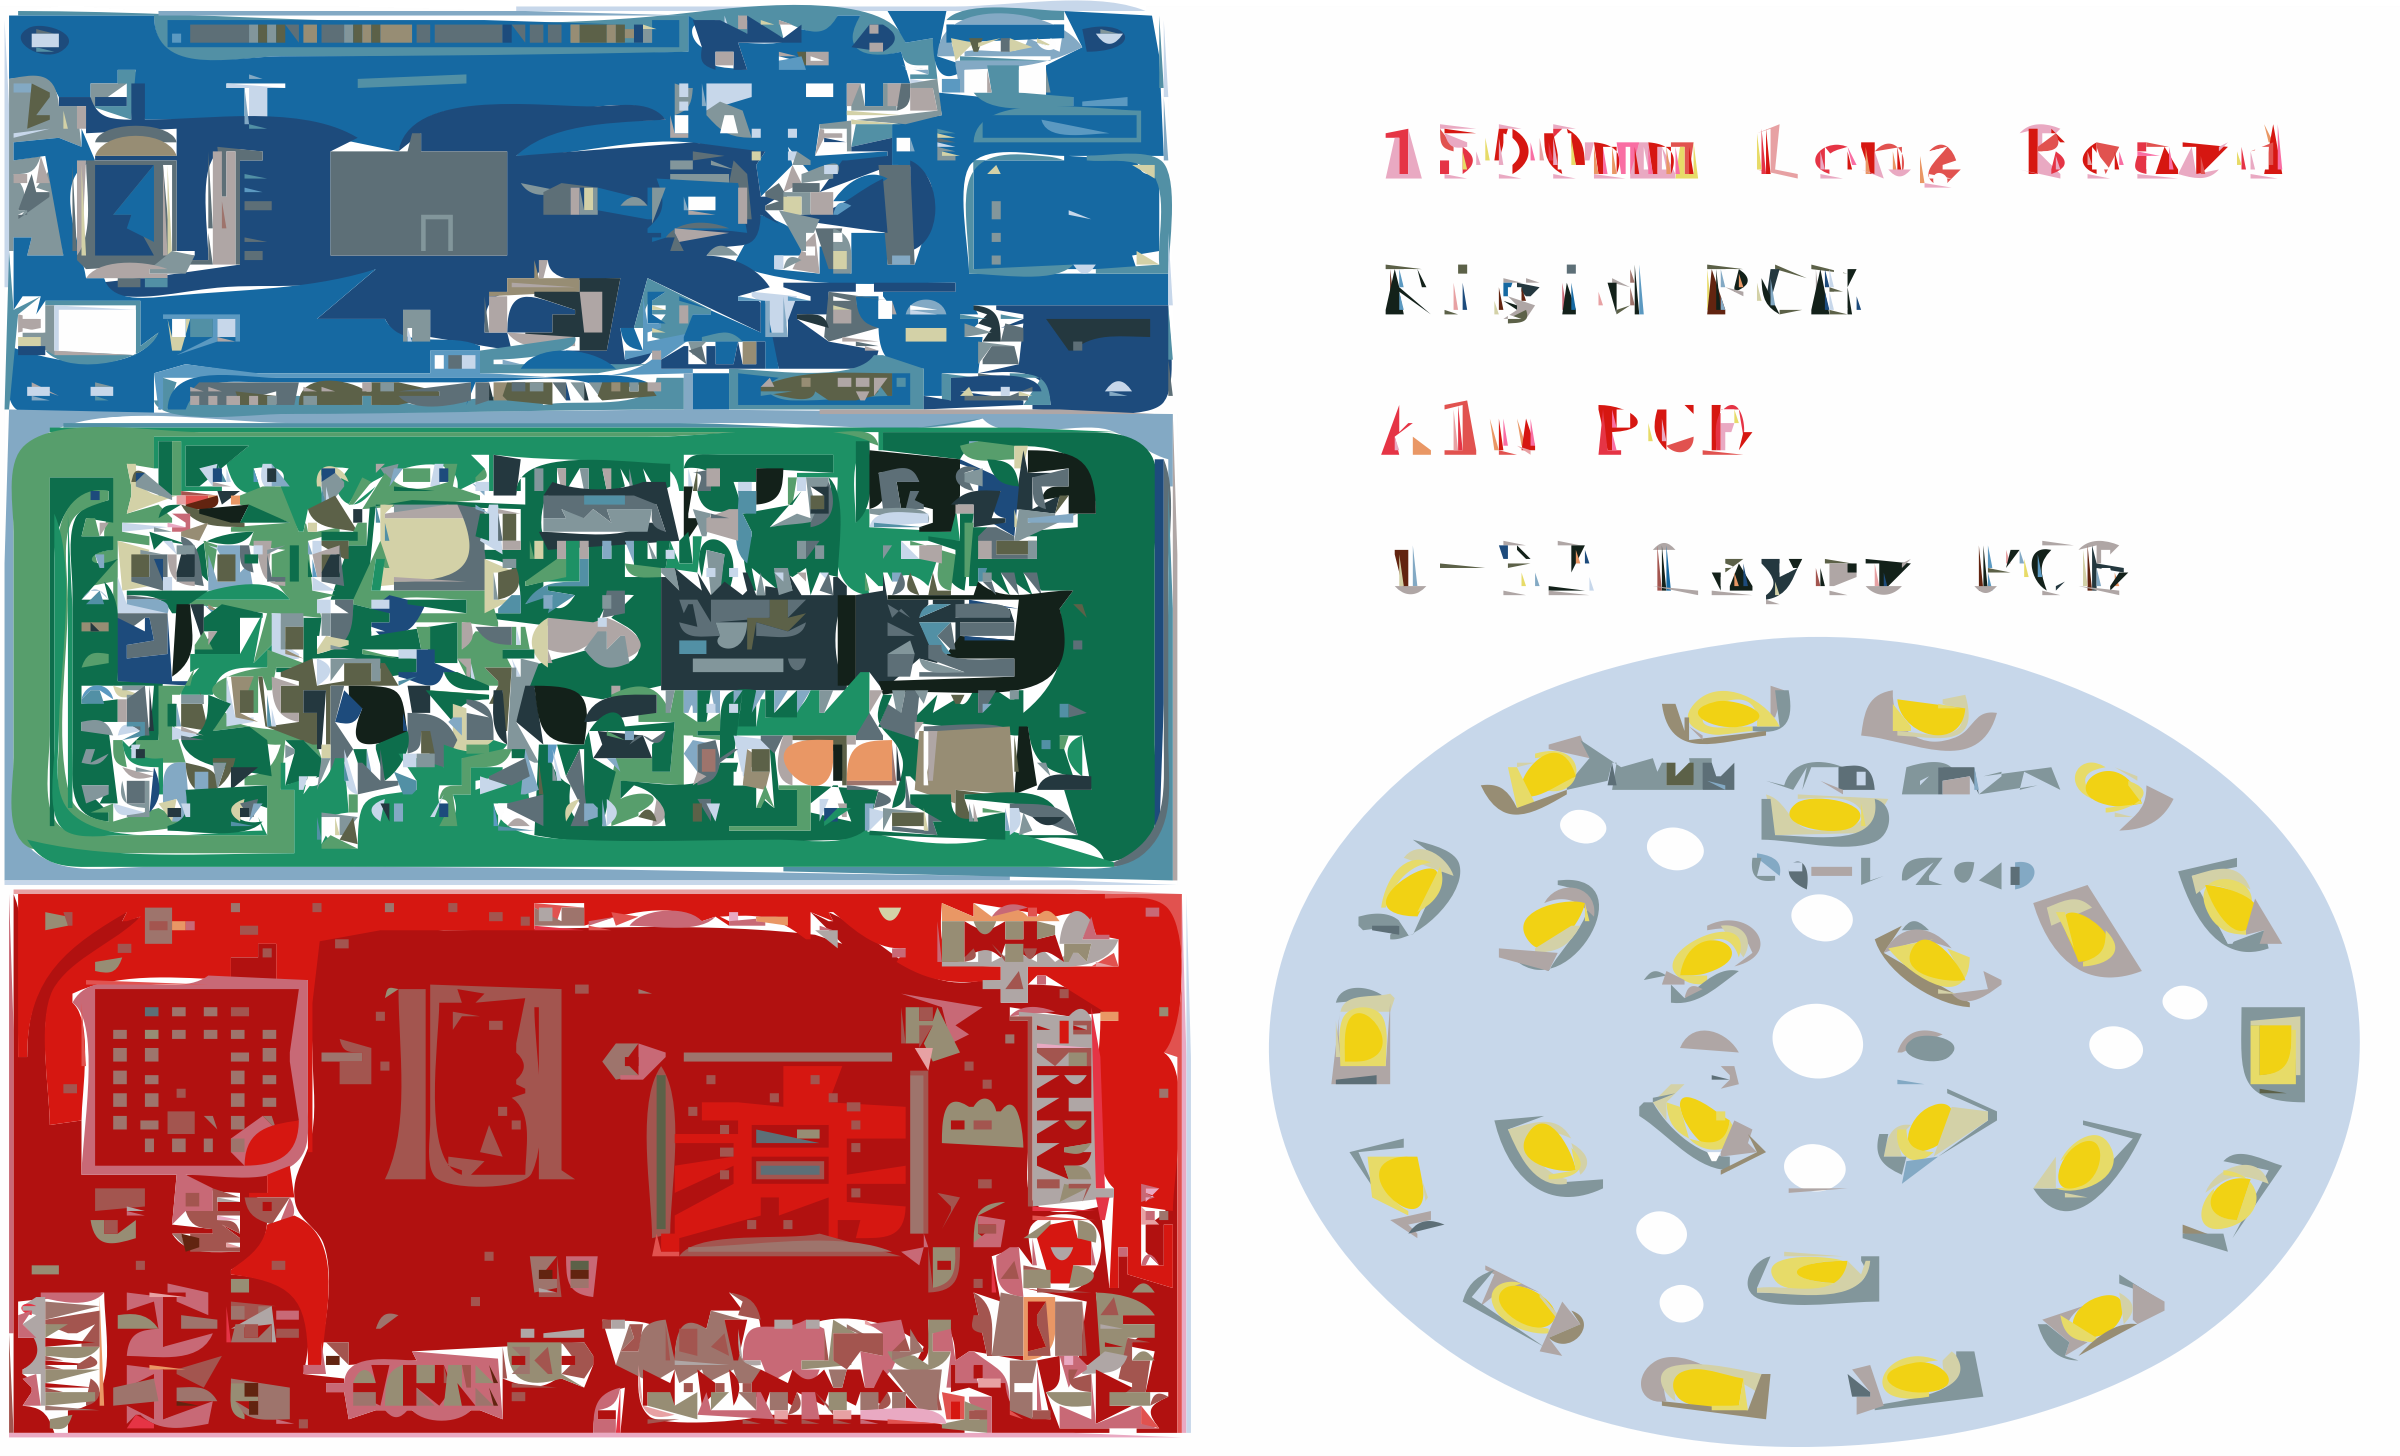 Re: PCB NEW by pcb_led6